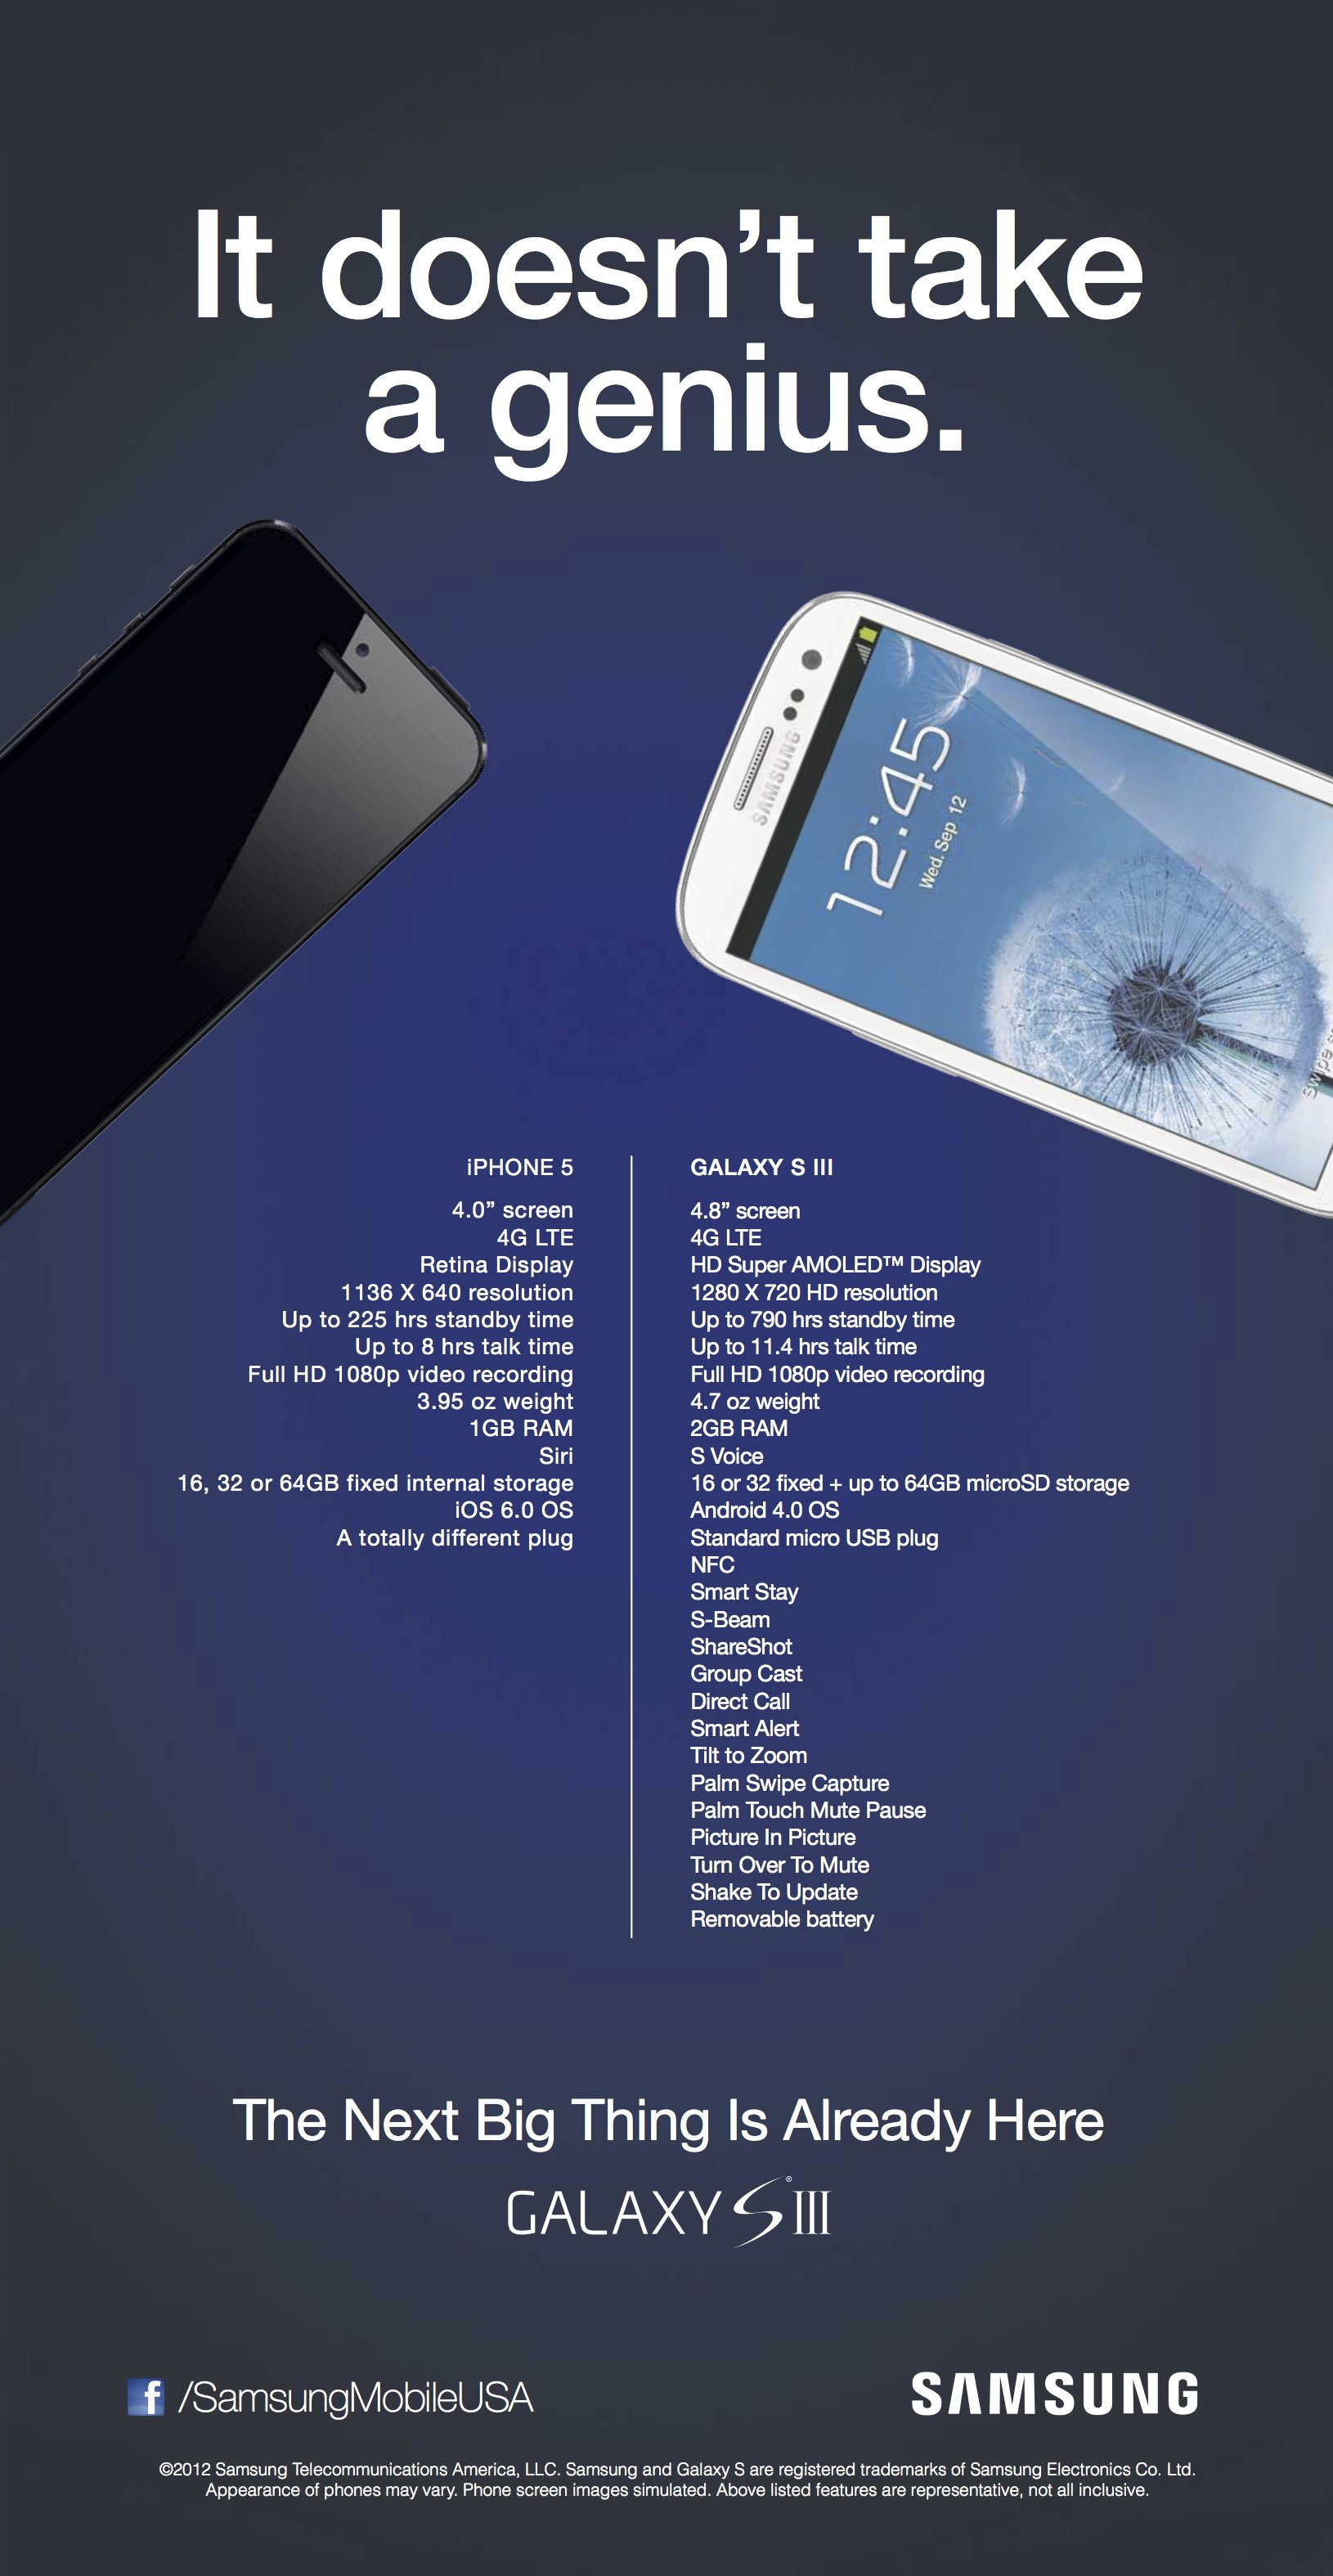 samsung-galaxy-s-iii-anti-iphone-5-ad-full-size.jpg